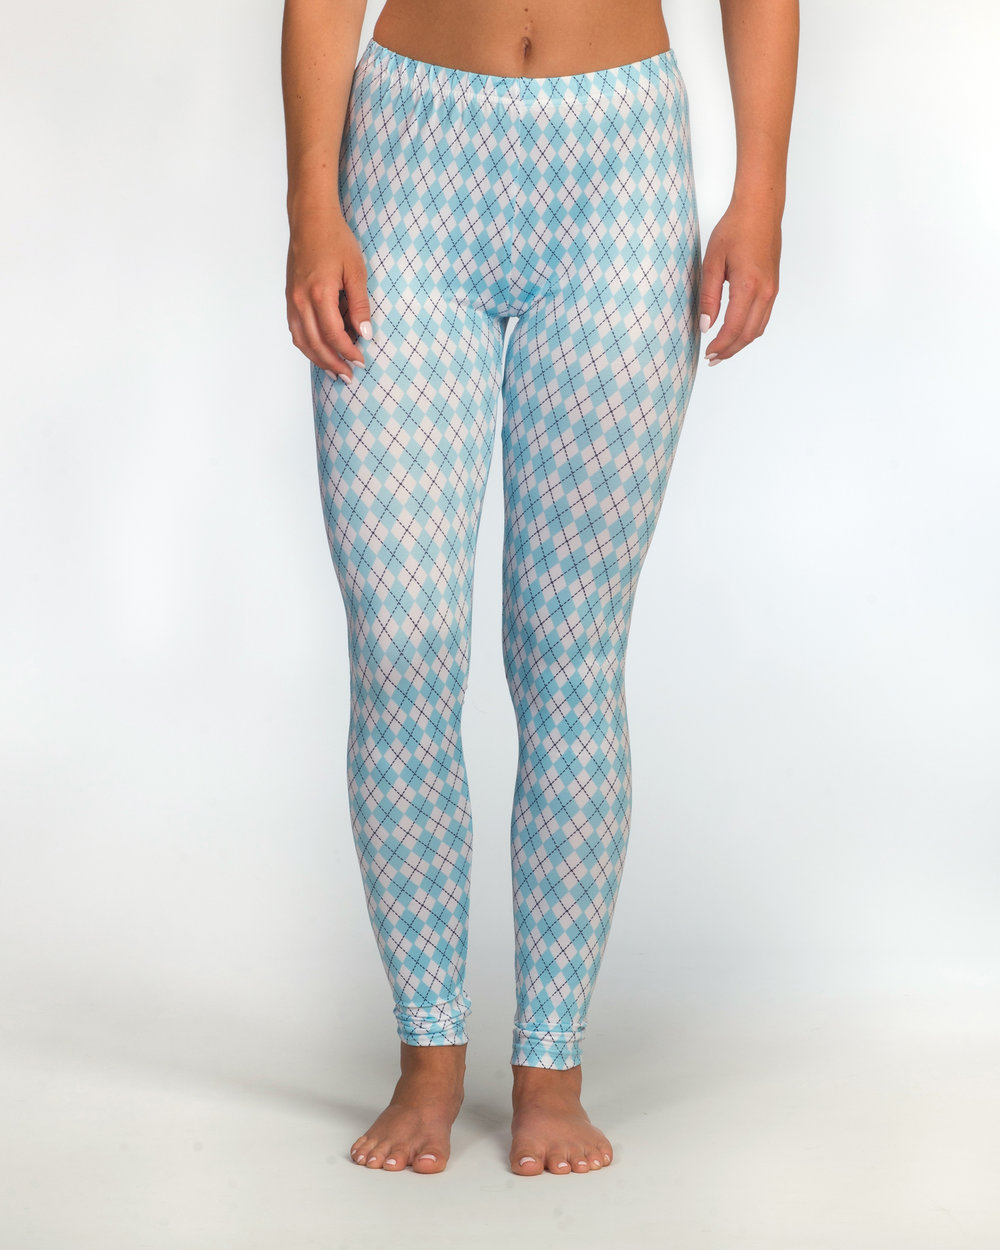 "Madison is 5' 6"" tall, has 31"" hips, and is rockin' a size S in Gameday Leggings UNC Argyle."